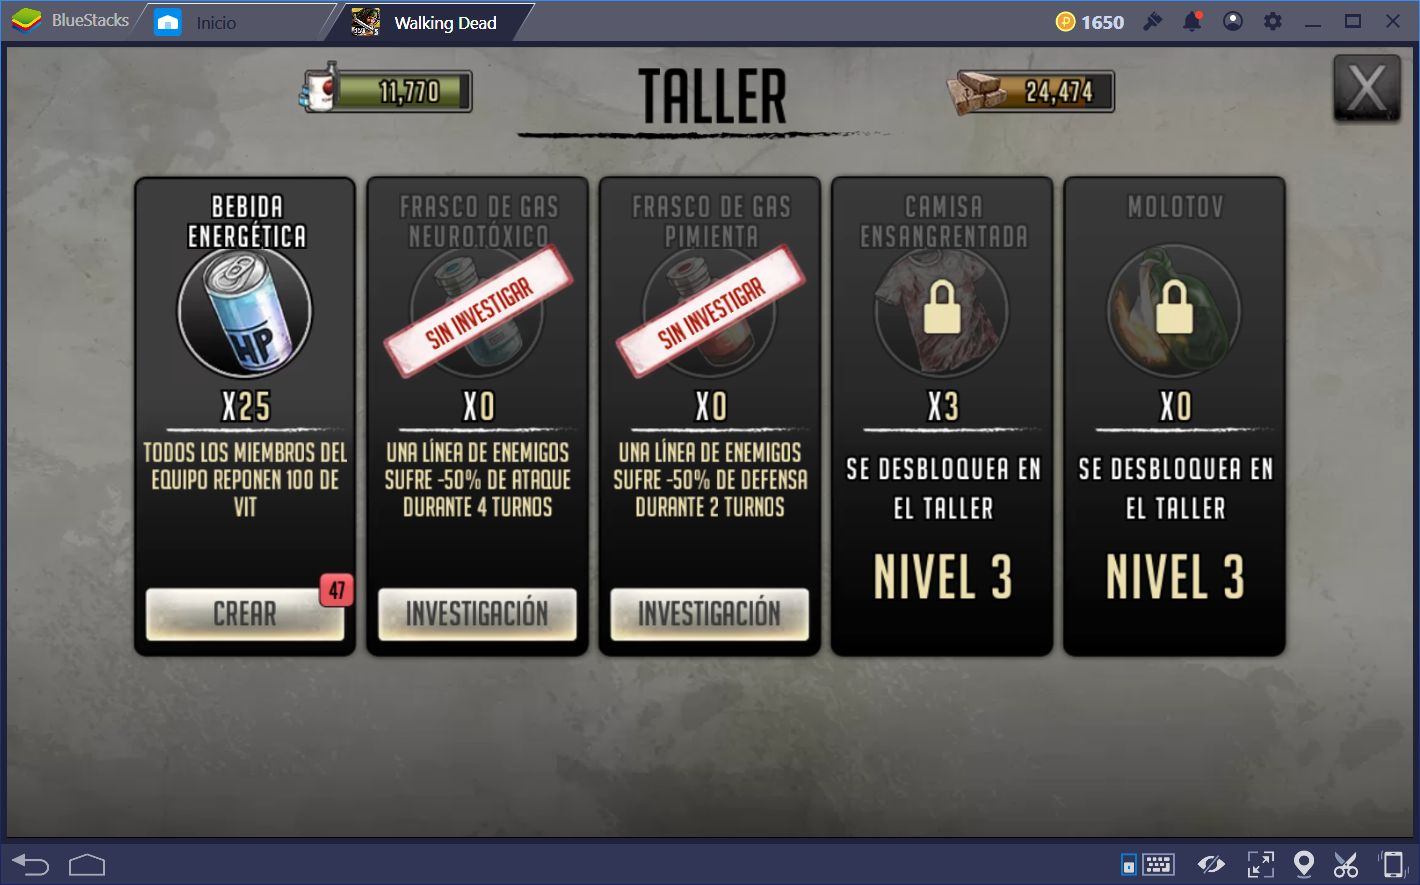 Guía Para el Taller de The Walking Dead: Road to Survival